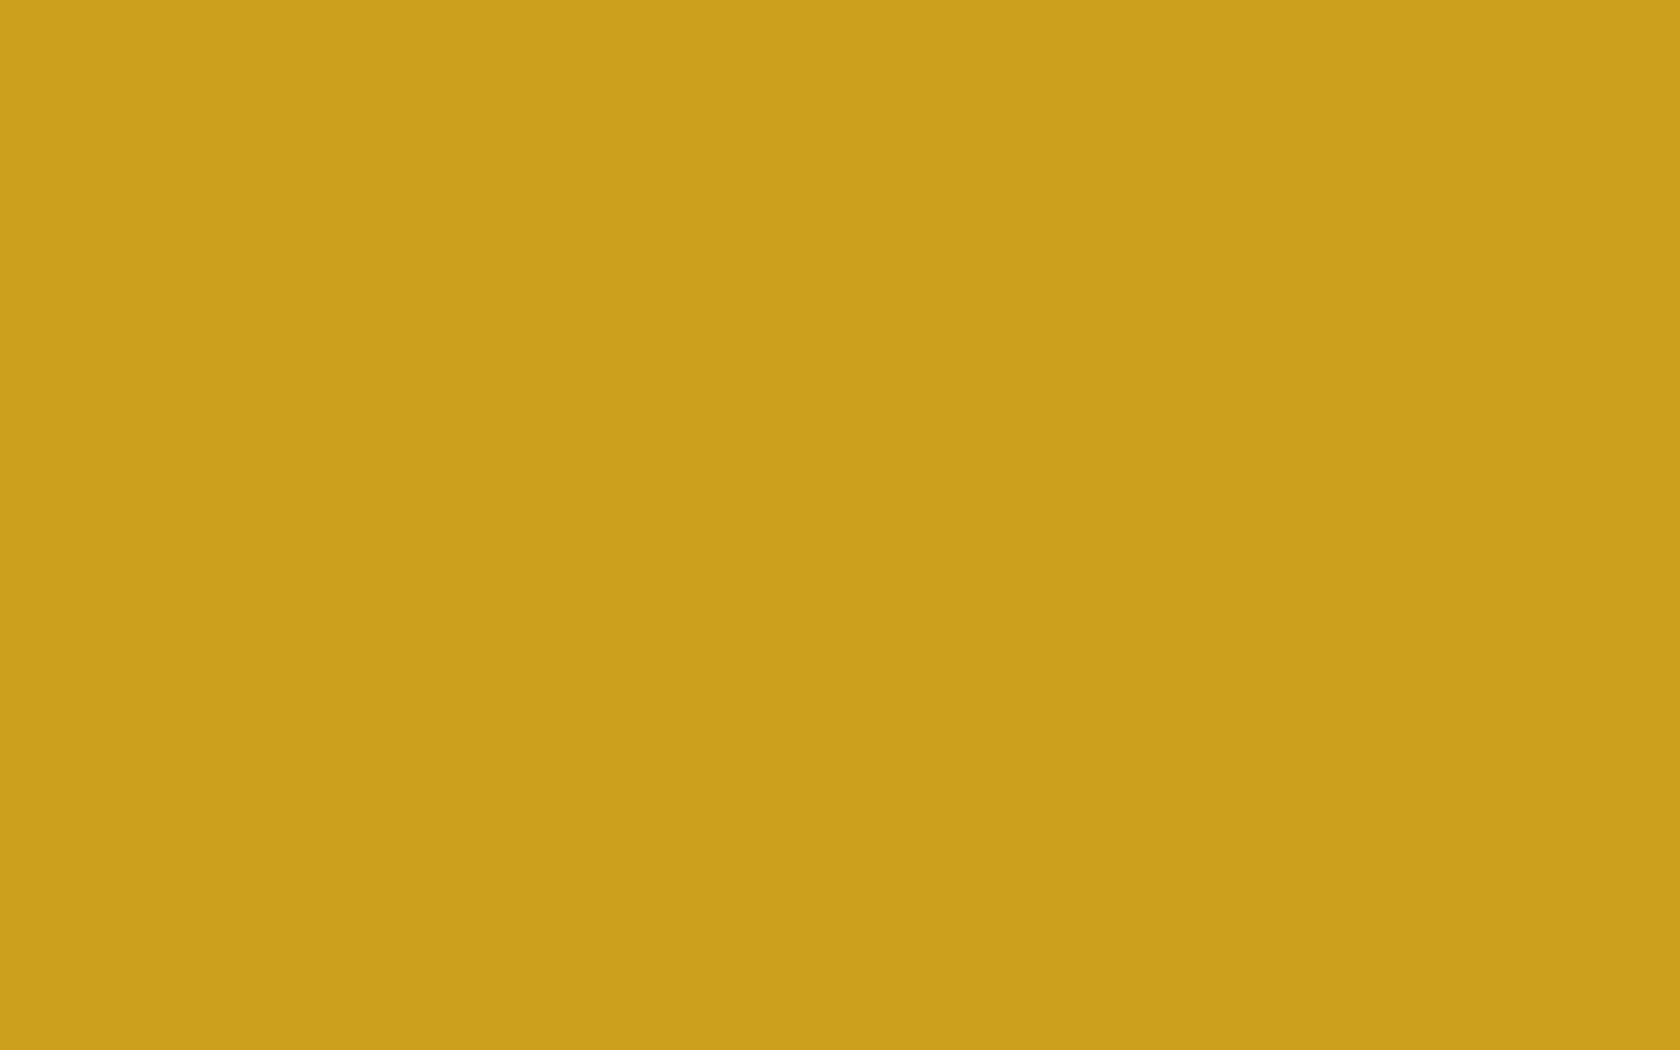 1680x1050 Lemon Curry Solid Color Background